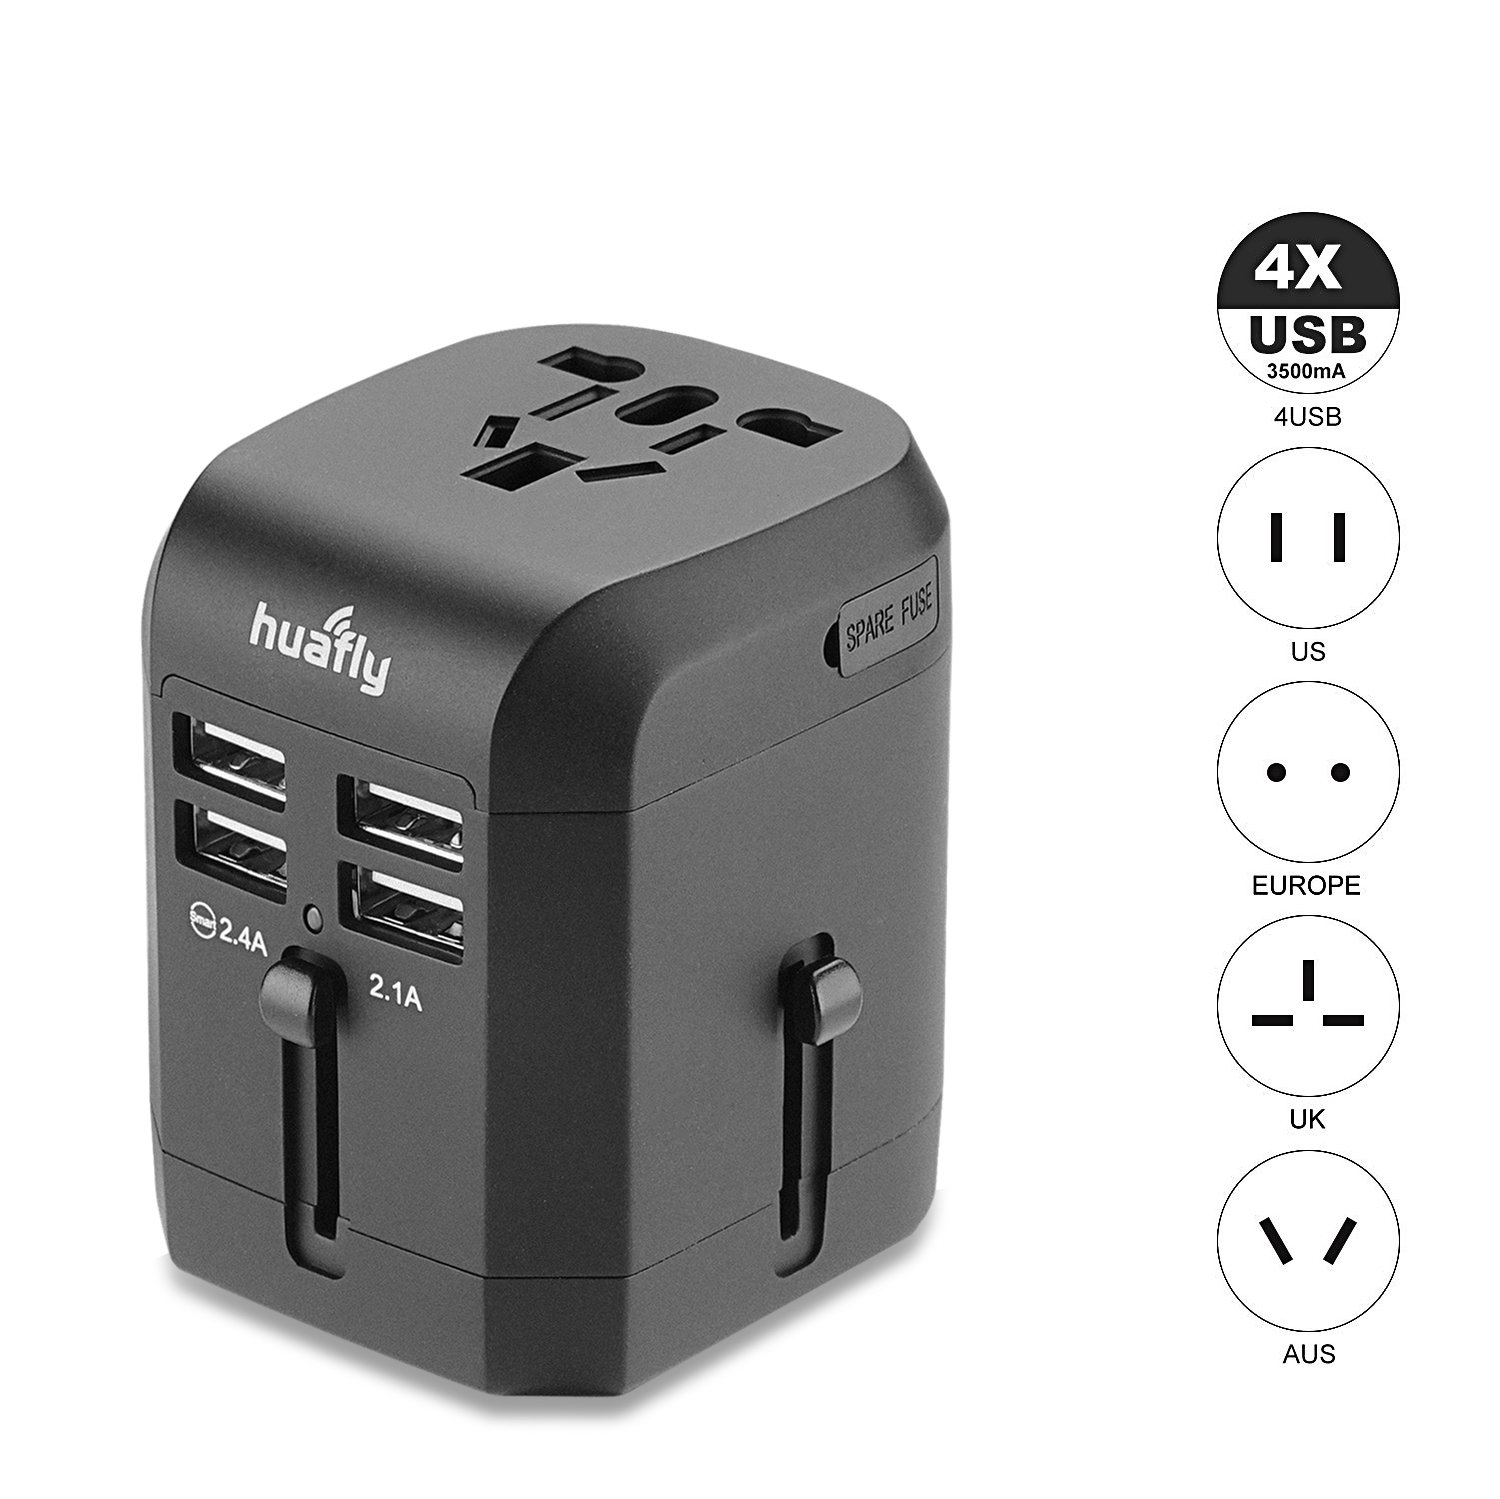 Huafly Universal USB International Travel Power Adapter Worldwide Travel Charger Universal AC Power Wall Outlet Plugs For USA EU UK AUS Cell Phone Laptop With Quad 3.5A Smart Power USB Charging Port